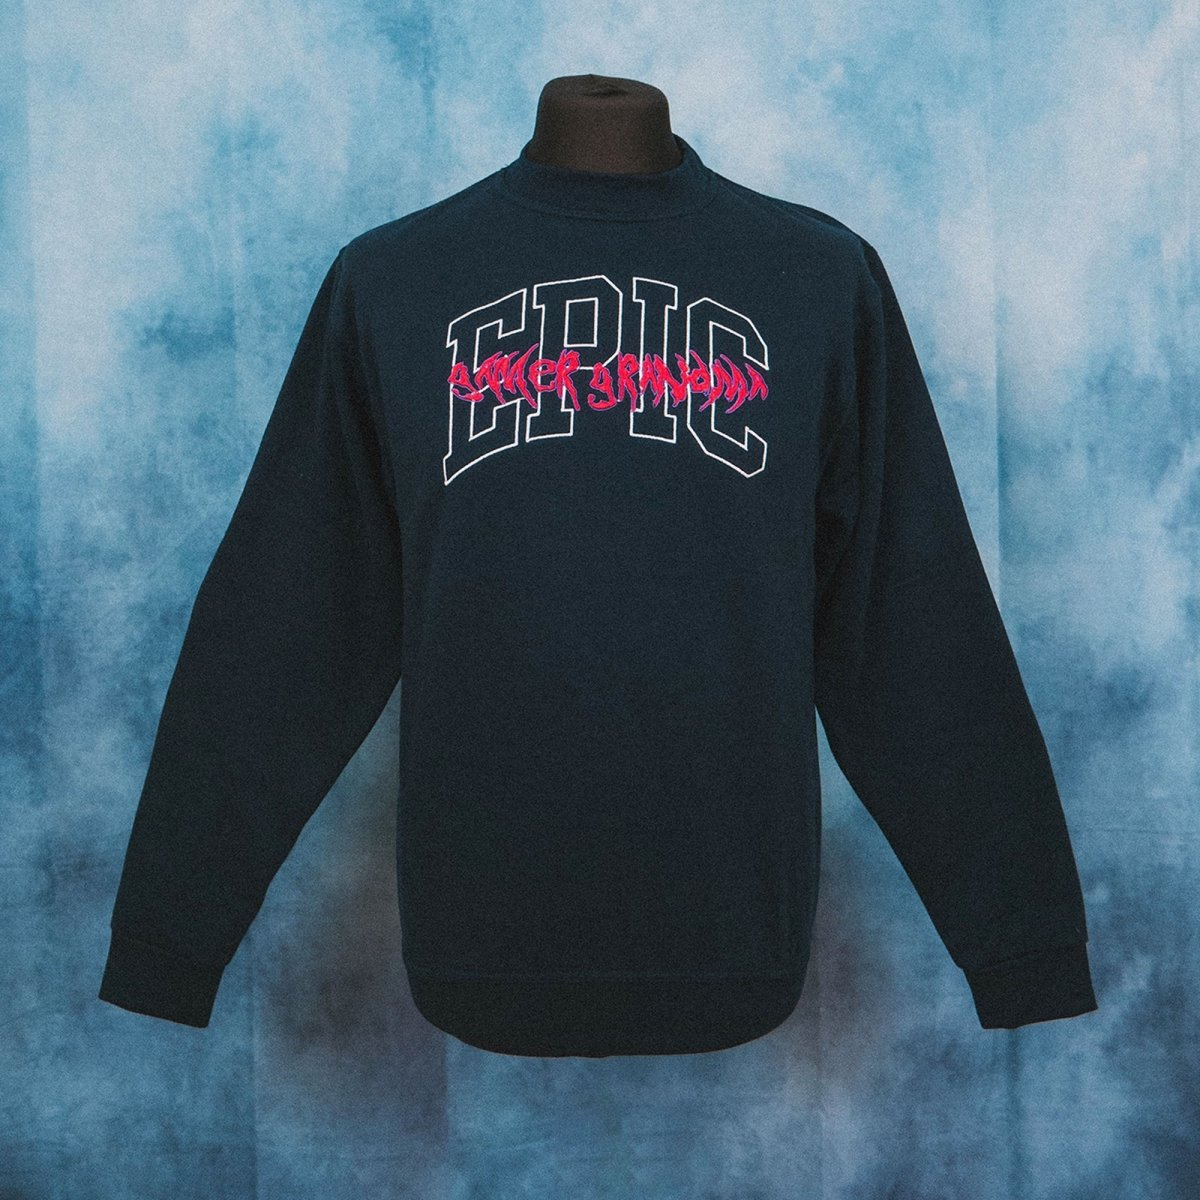 Epic Gamer Grandma - College Navy Unisex Embroidered Sweater